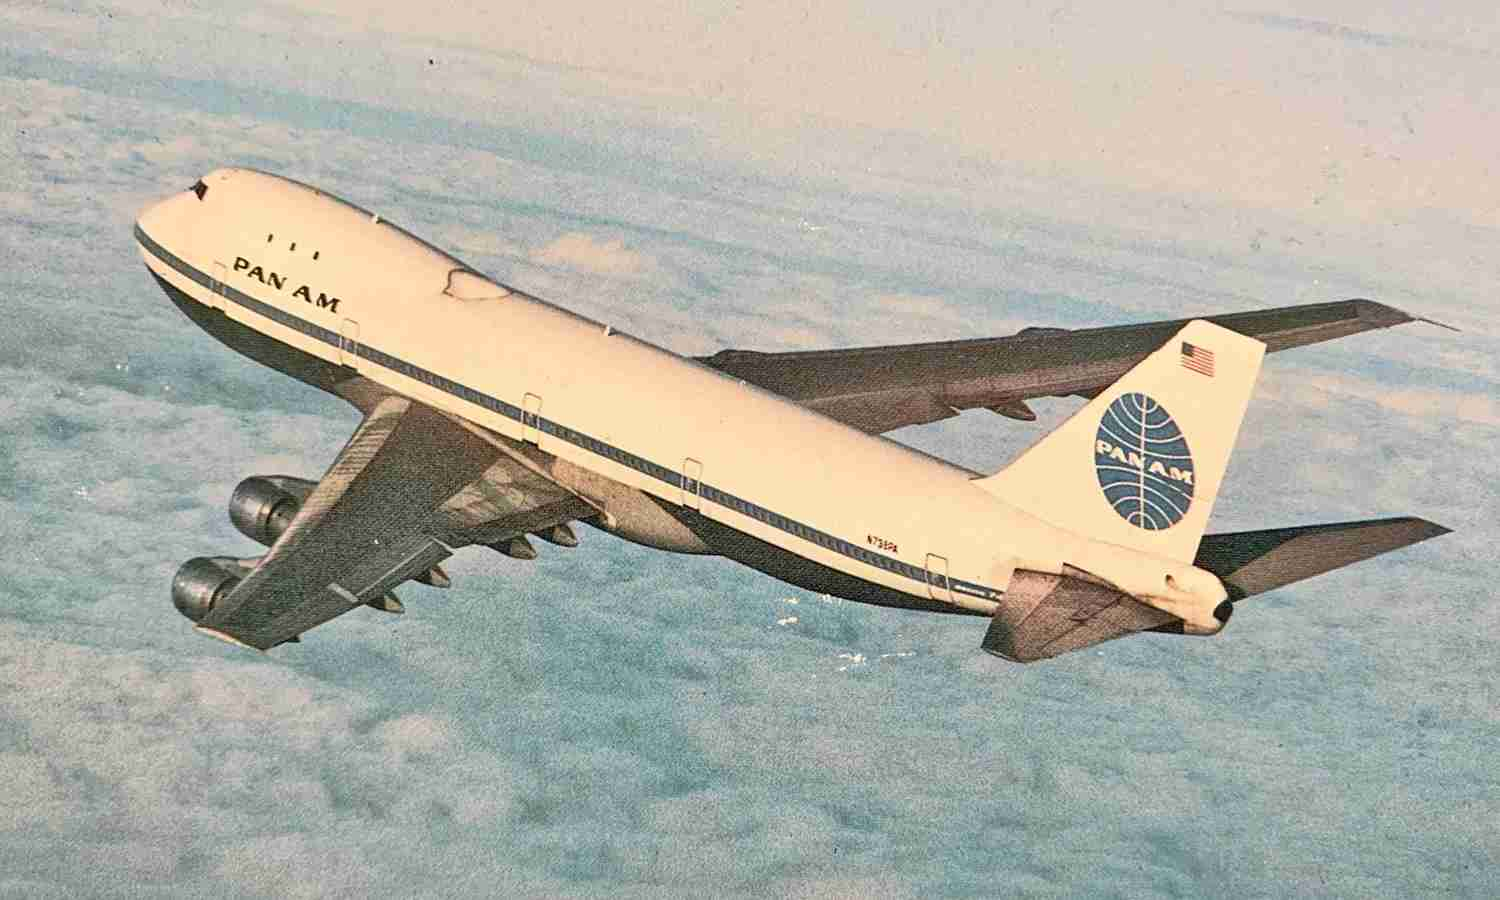 Pan Am introduced the 747 to the world in 1970